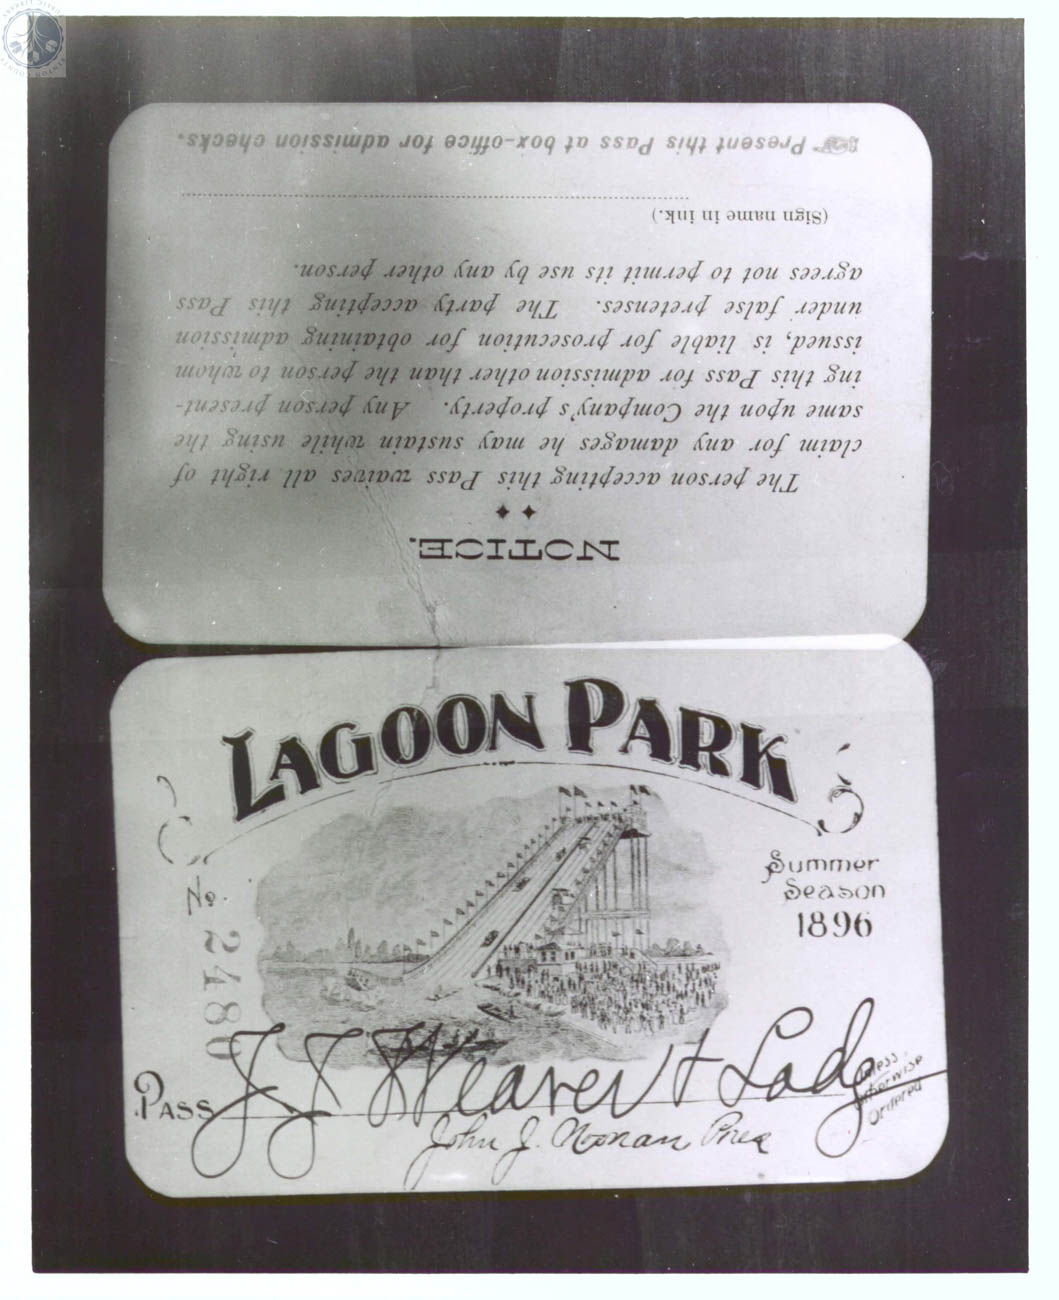 "From 1895 to 1918, one of the nation's largest amusement parks operated in Ludlow, Kentucky. The Ludlow Lagoon Amusement Park sat on an 85-acre, man-made lake where thousands of visitors per day enjoyed swimming, boating, motorcycle racing, dancing, carnival games, animal shows, a ""Scenic Railway"" roller coaster, and performances in one of the nation's first air-conditioned theaters. / Image courtesy of the KY Post via the ""Faces and Places: Northern Kentucky Photographic Archives"" of the Kenton County Public Library // Published: 6.5.19"